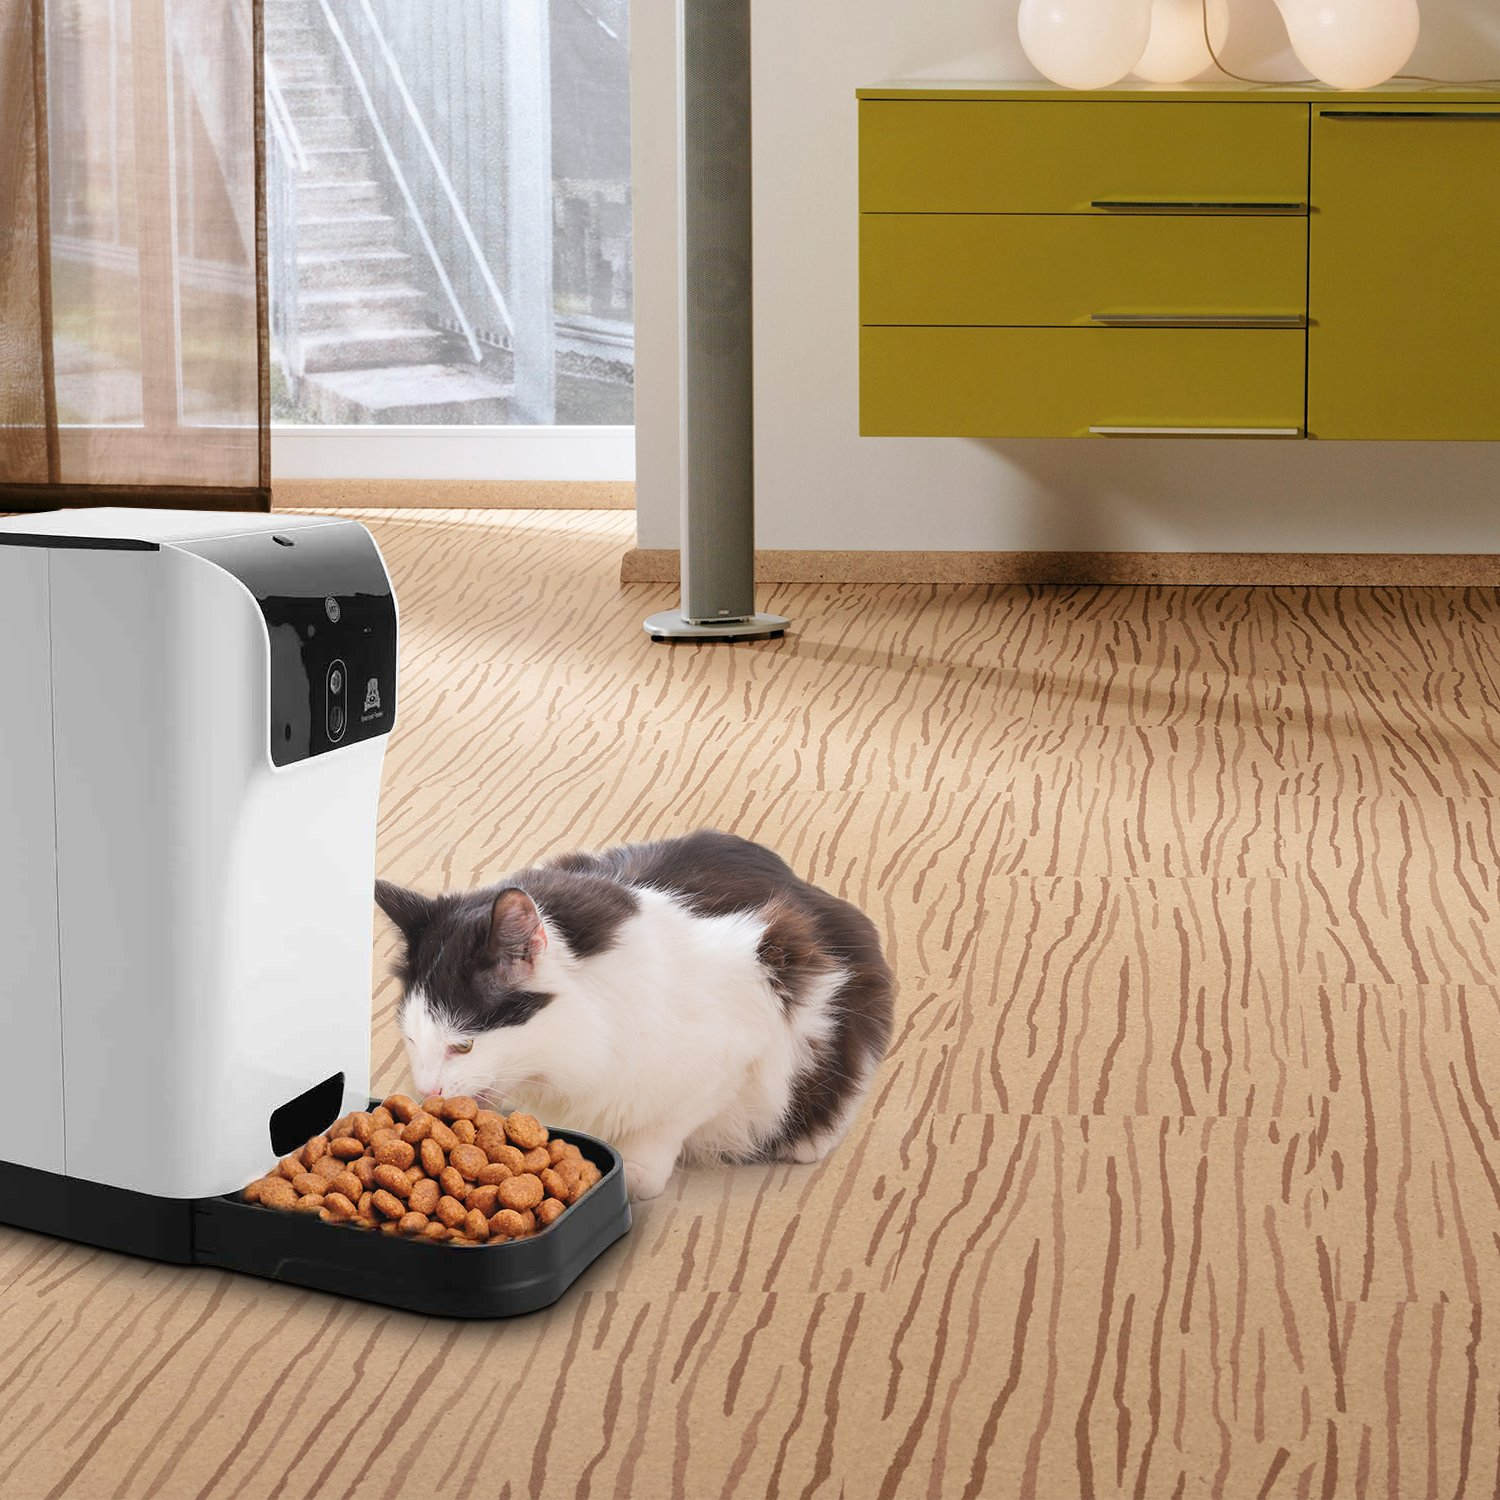 pet camera reviews : Sailnovo Cat Feeder on Amazon